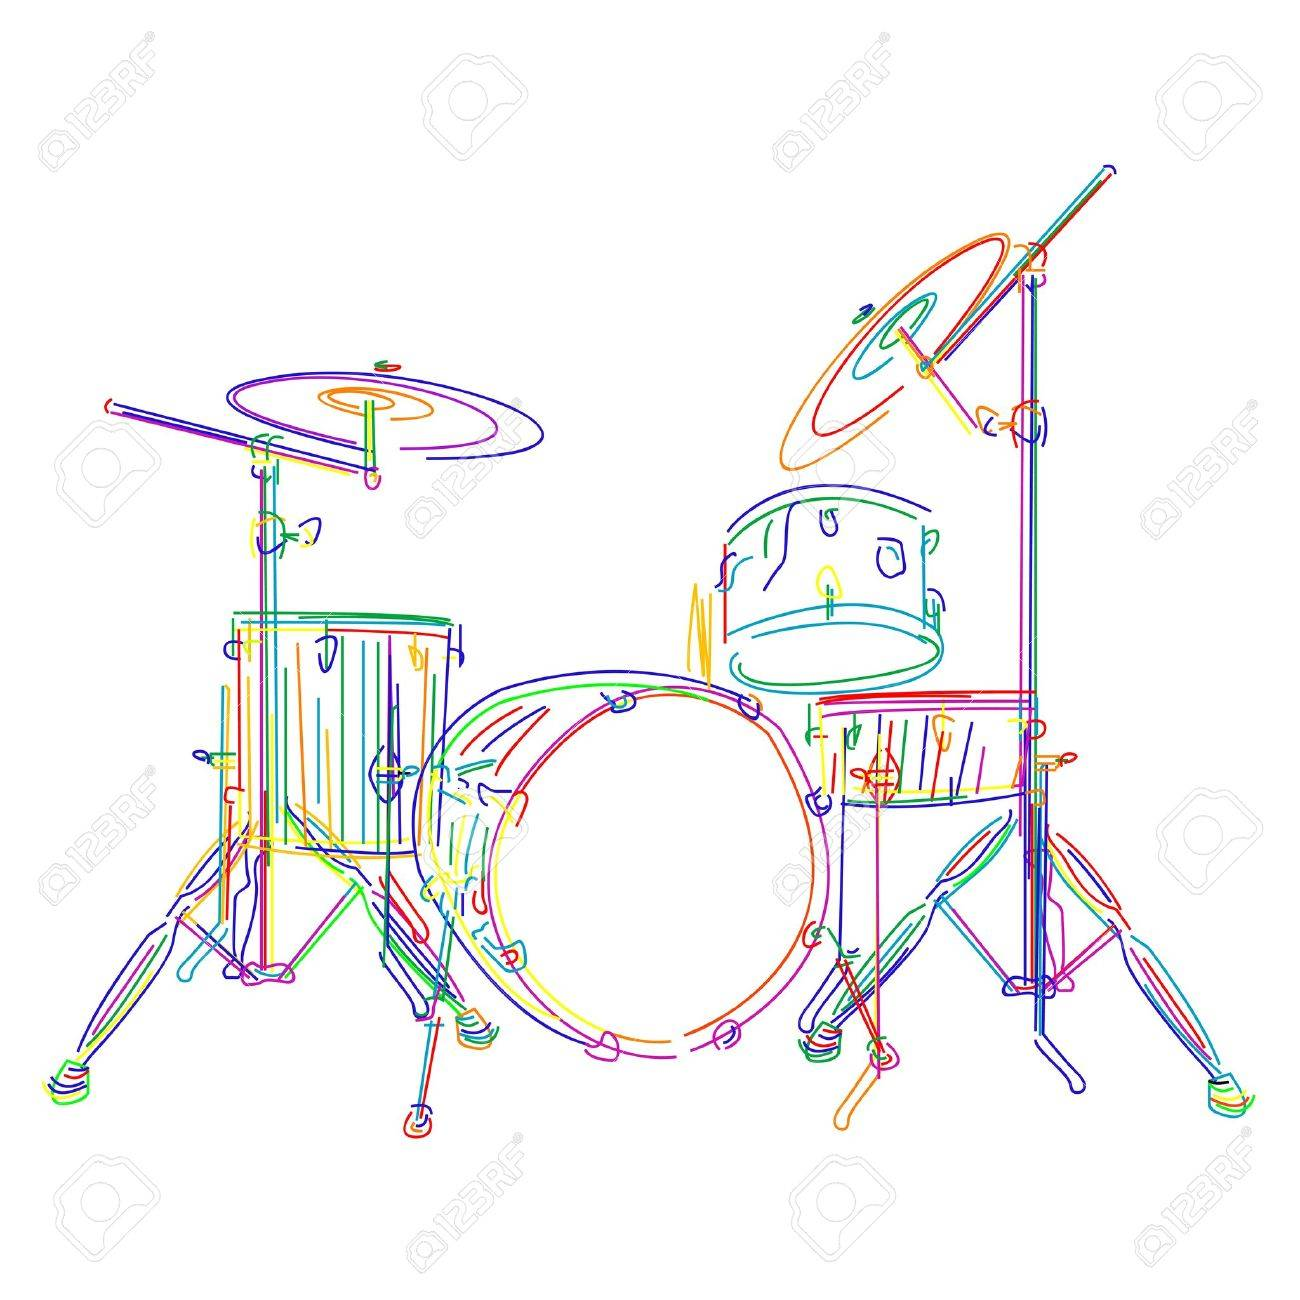 Graphic drums kit over white background Stock Vector - 9946506